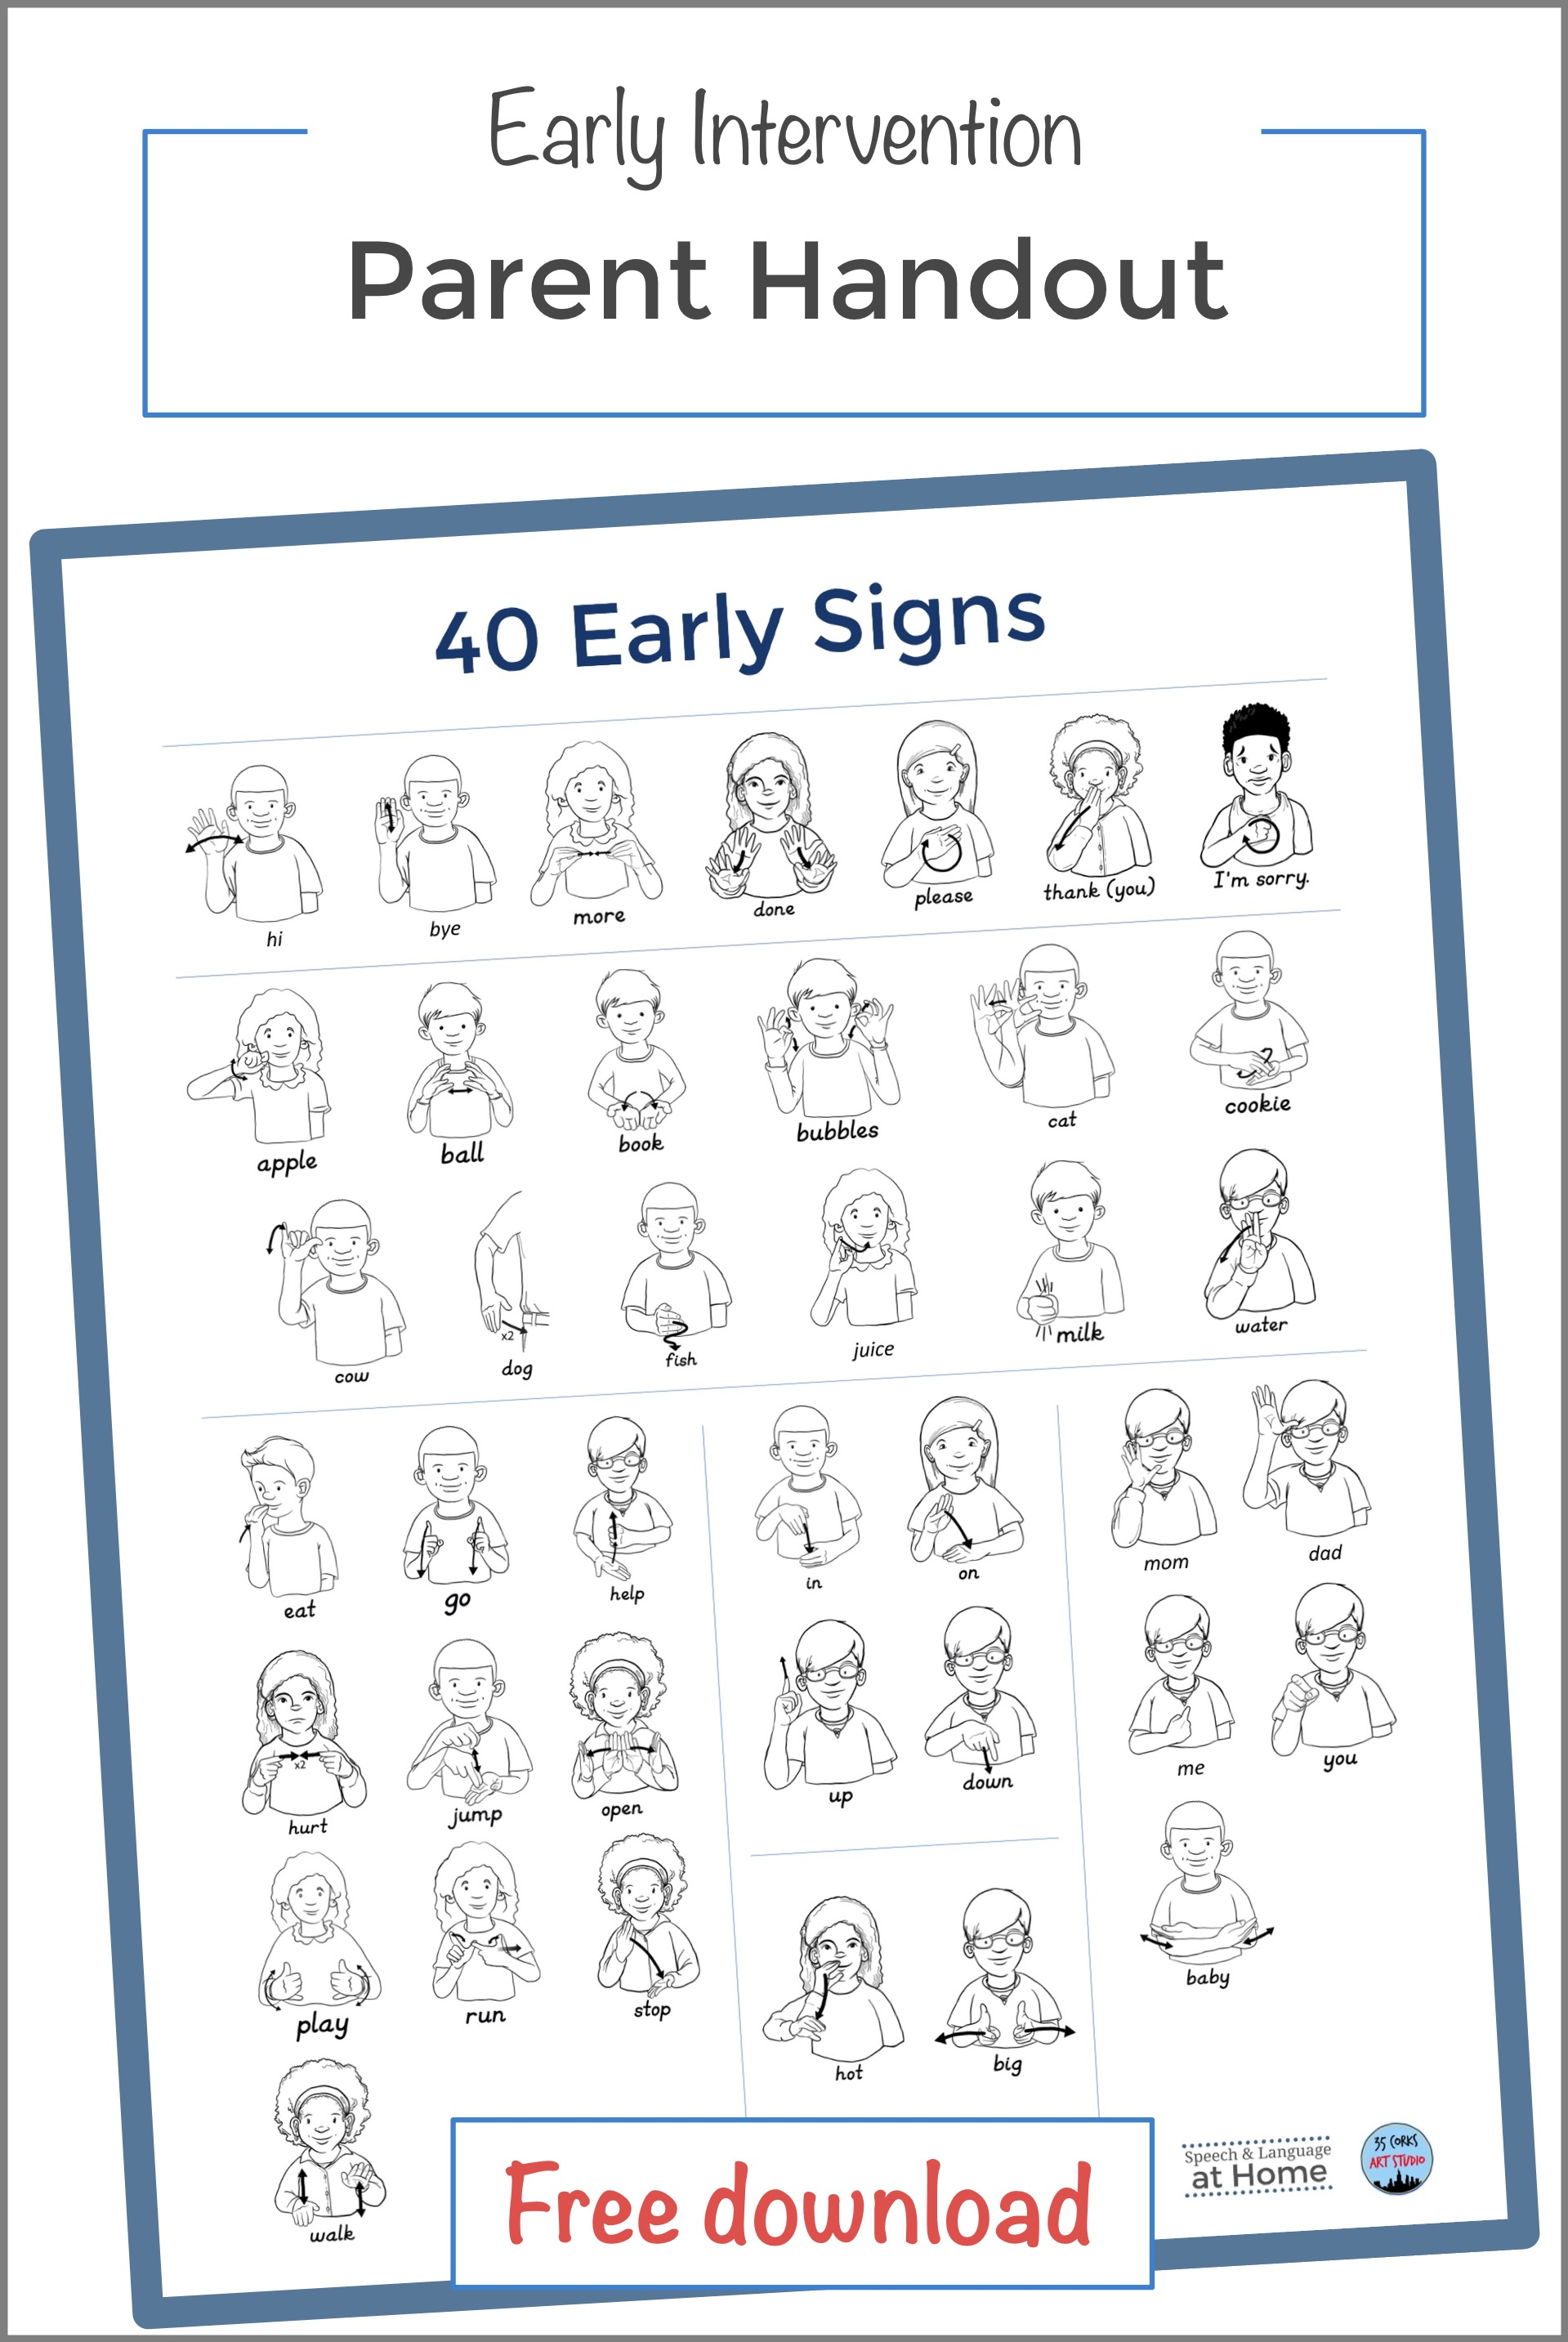 40 Early Signs Parent Handout